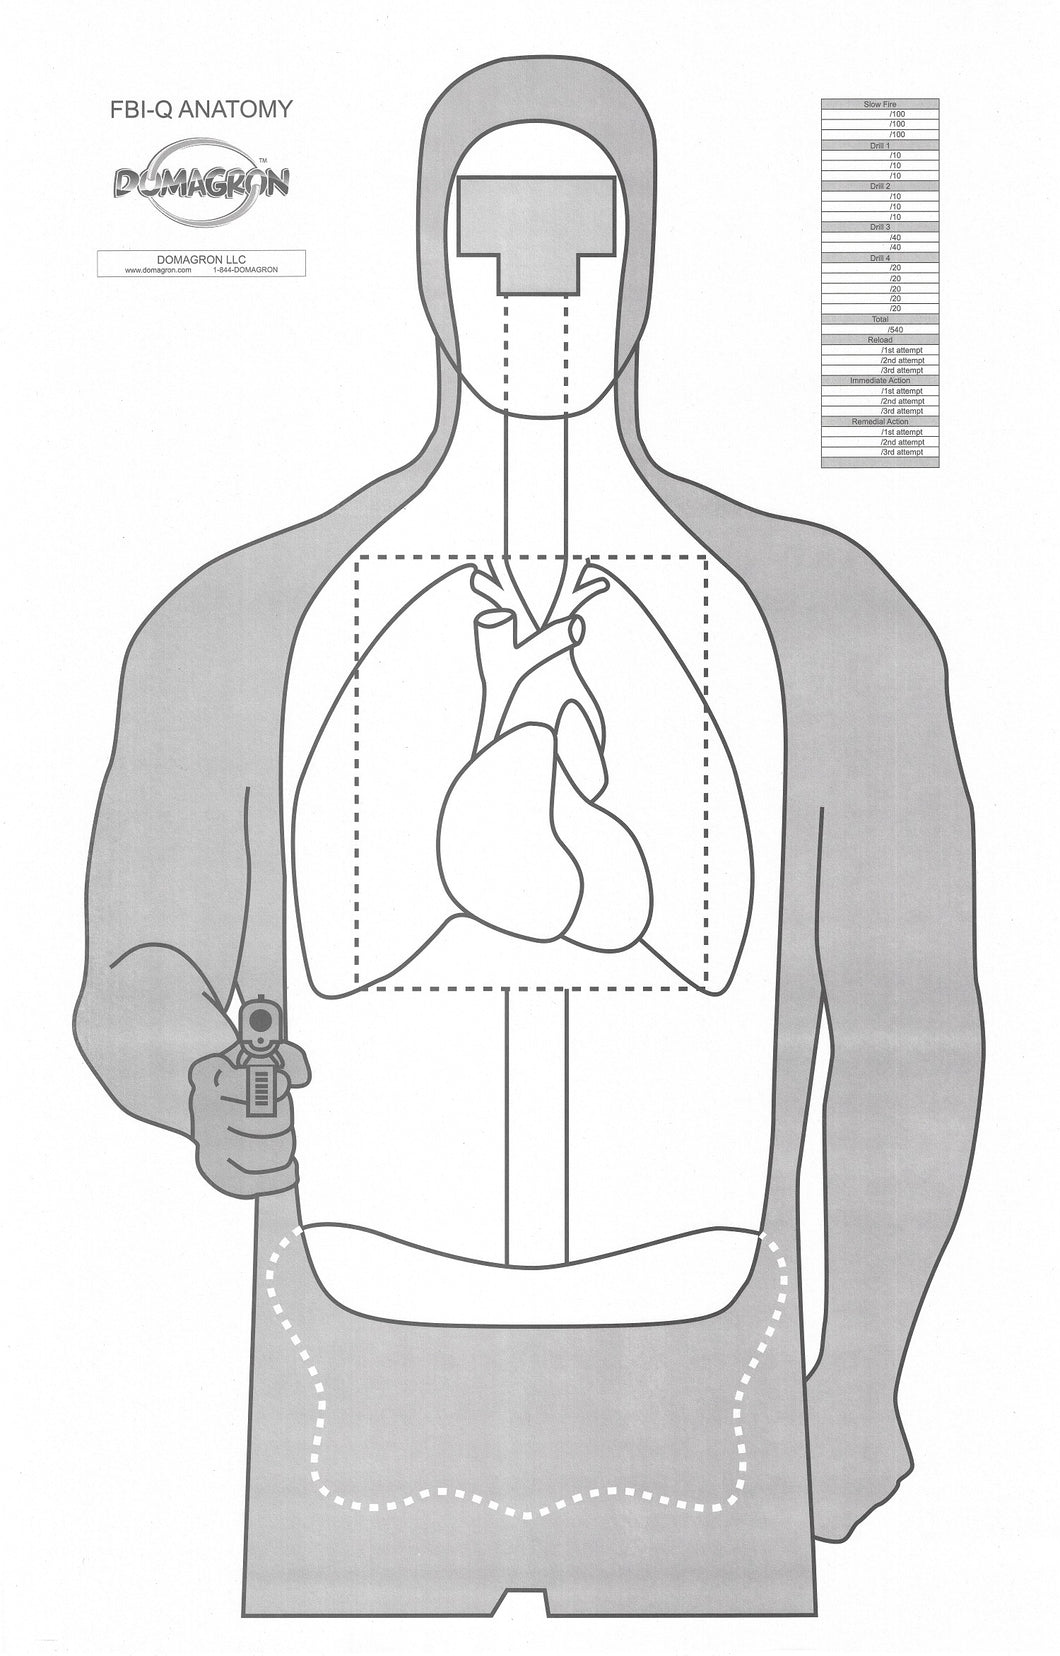 FBI Q Anatomy Target 23 x 35 (Pack of 100) - DOMAGRON